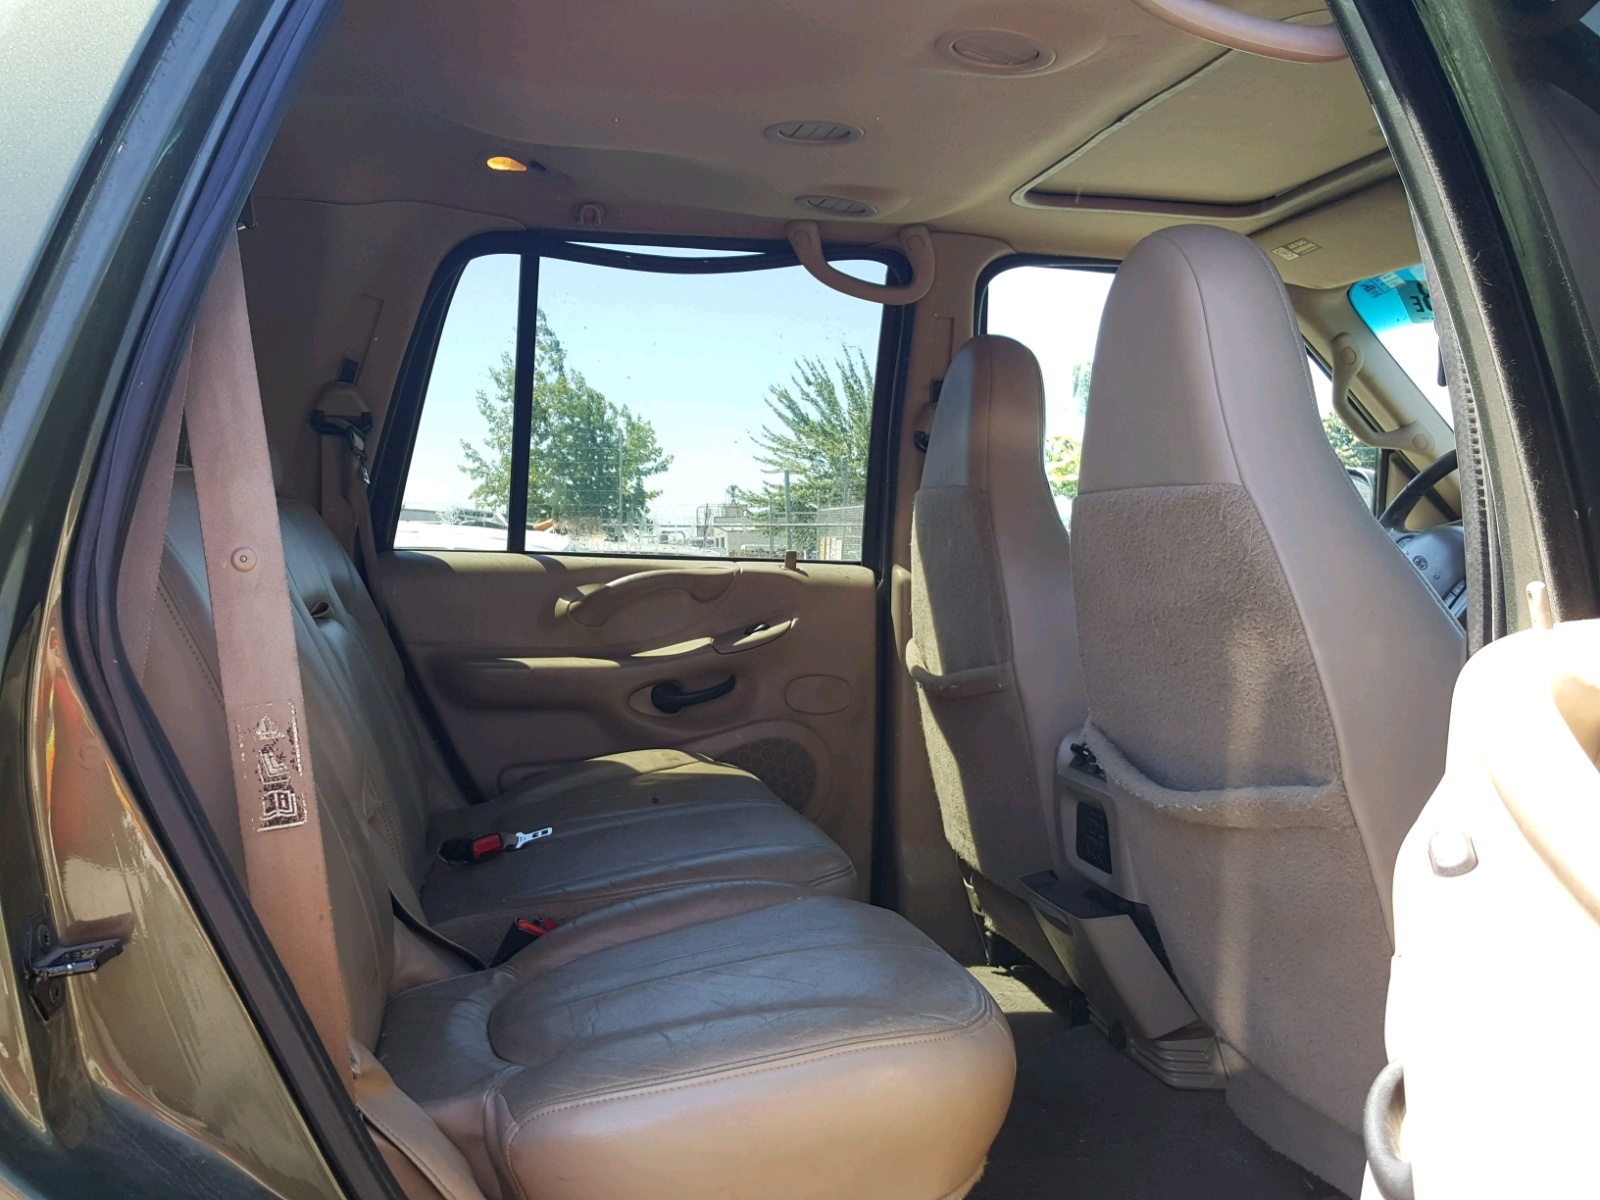 hight resolution of  1fmpu18l0yla72054 2000 ford expedition 5 4l detail view 1fmpu18l0yla72054